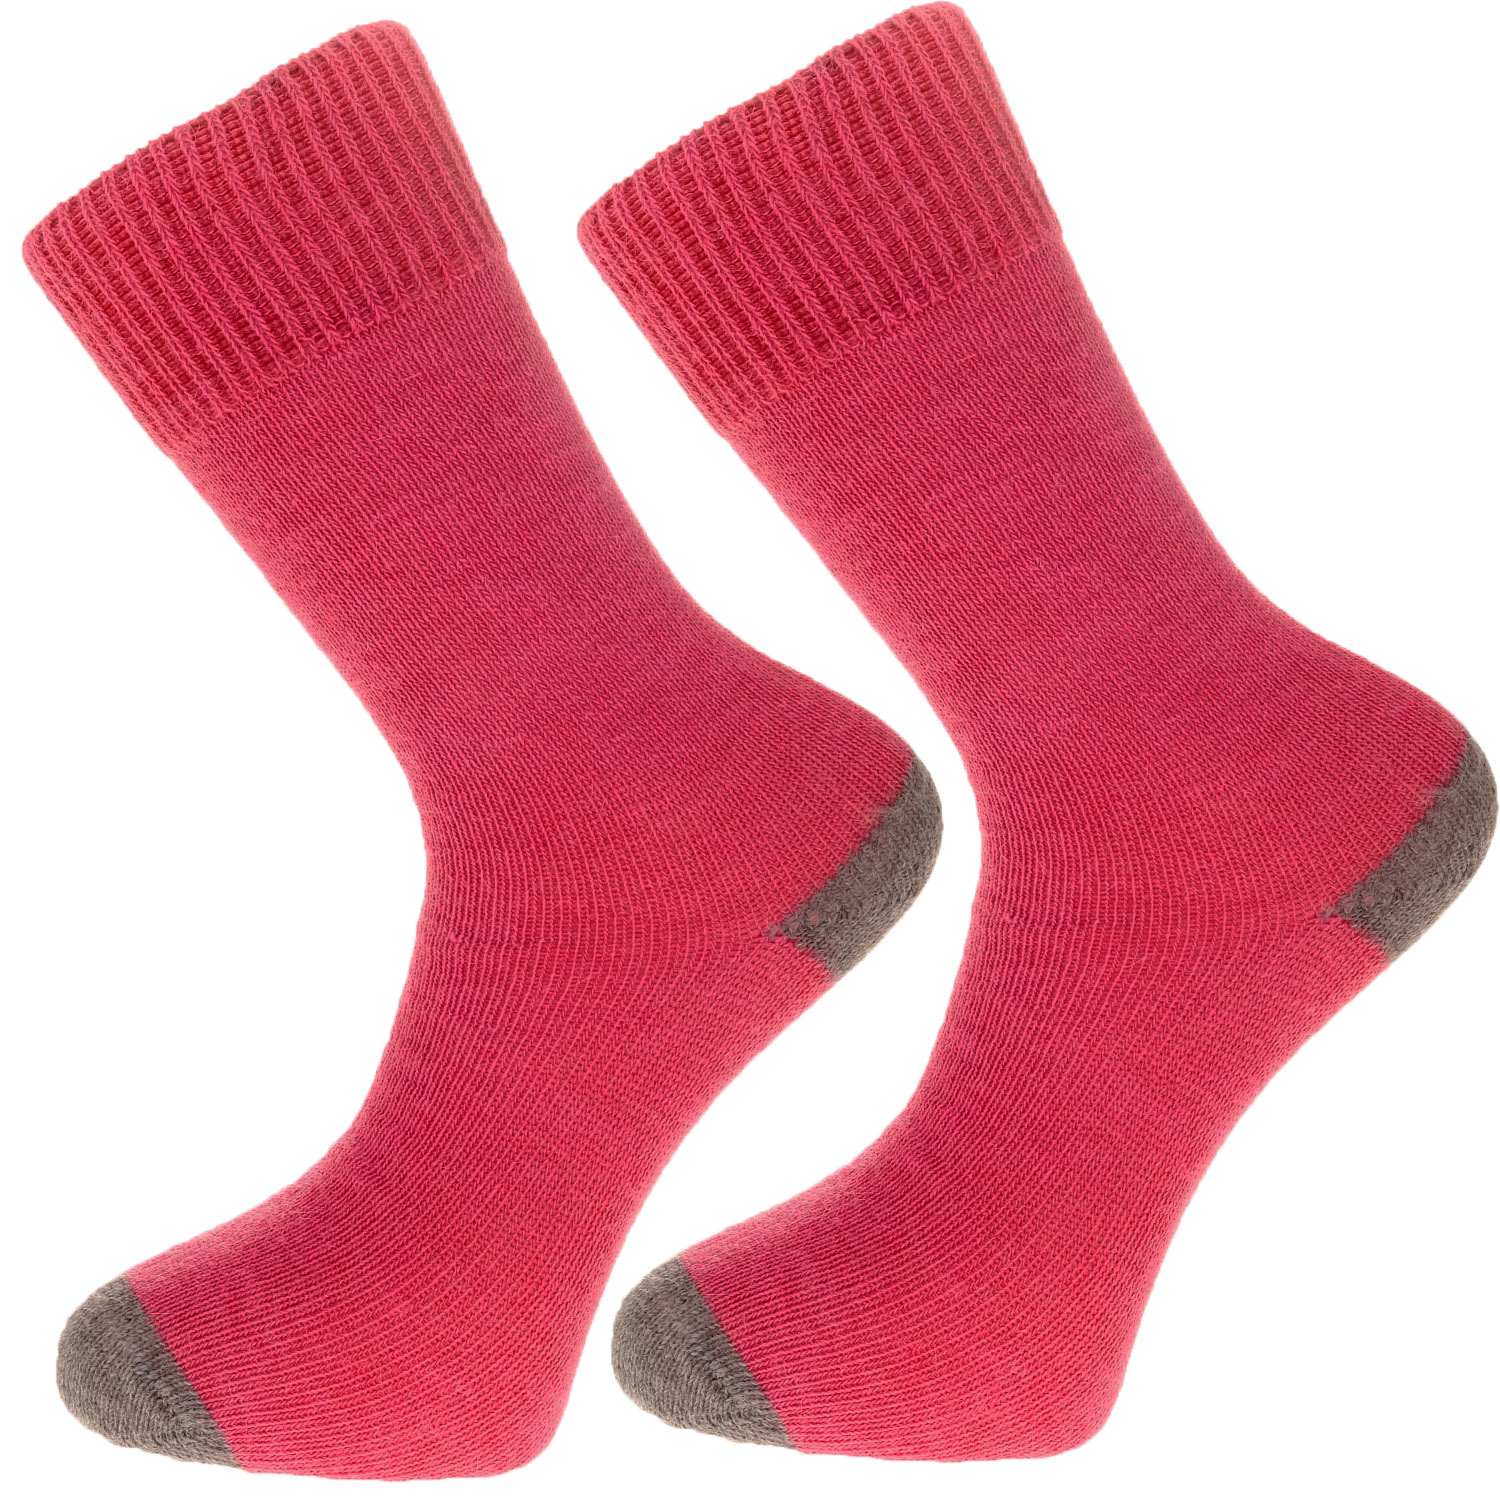 The Alpaca Every Day Heel and Toe Contrast Socks Pink/Grey